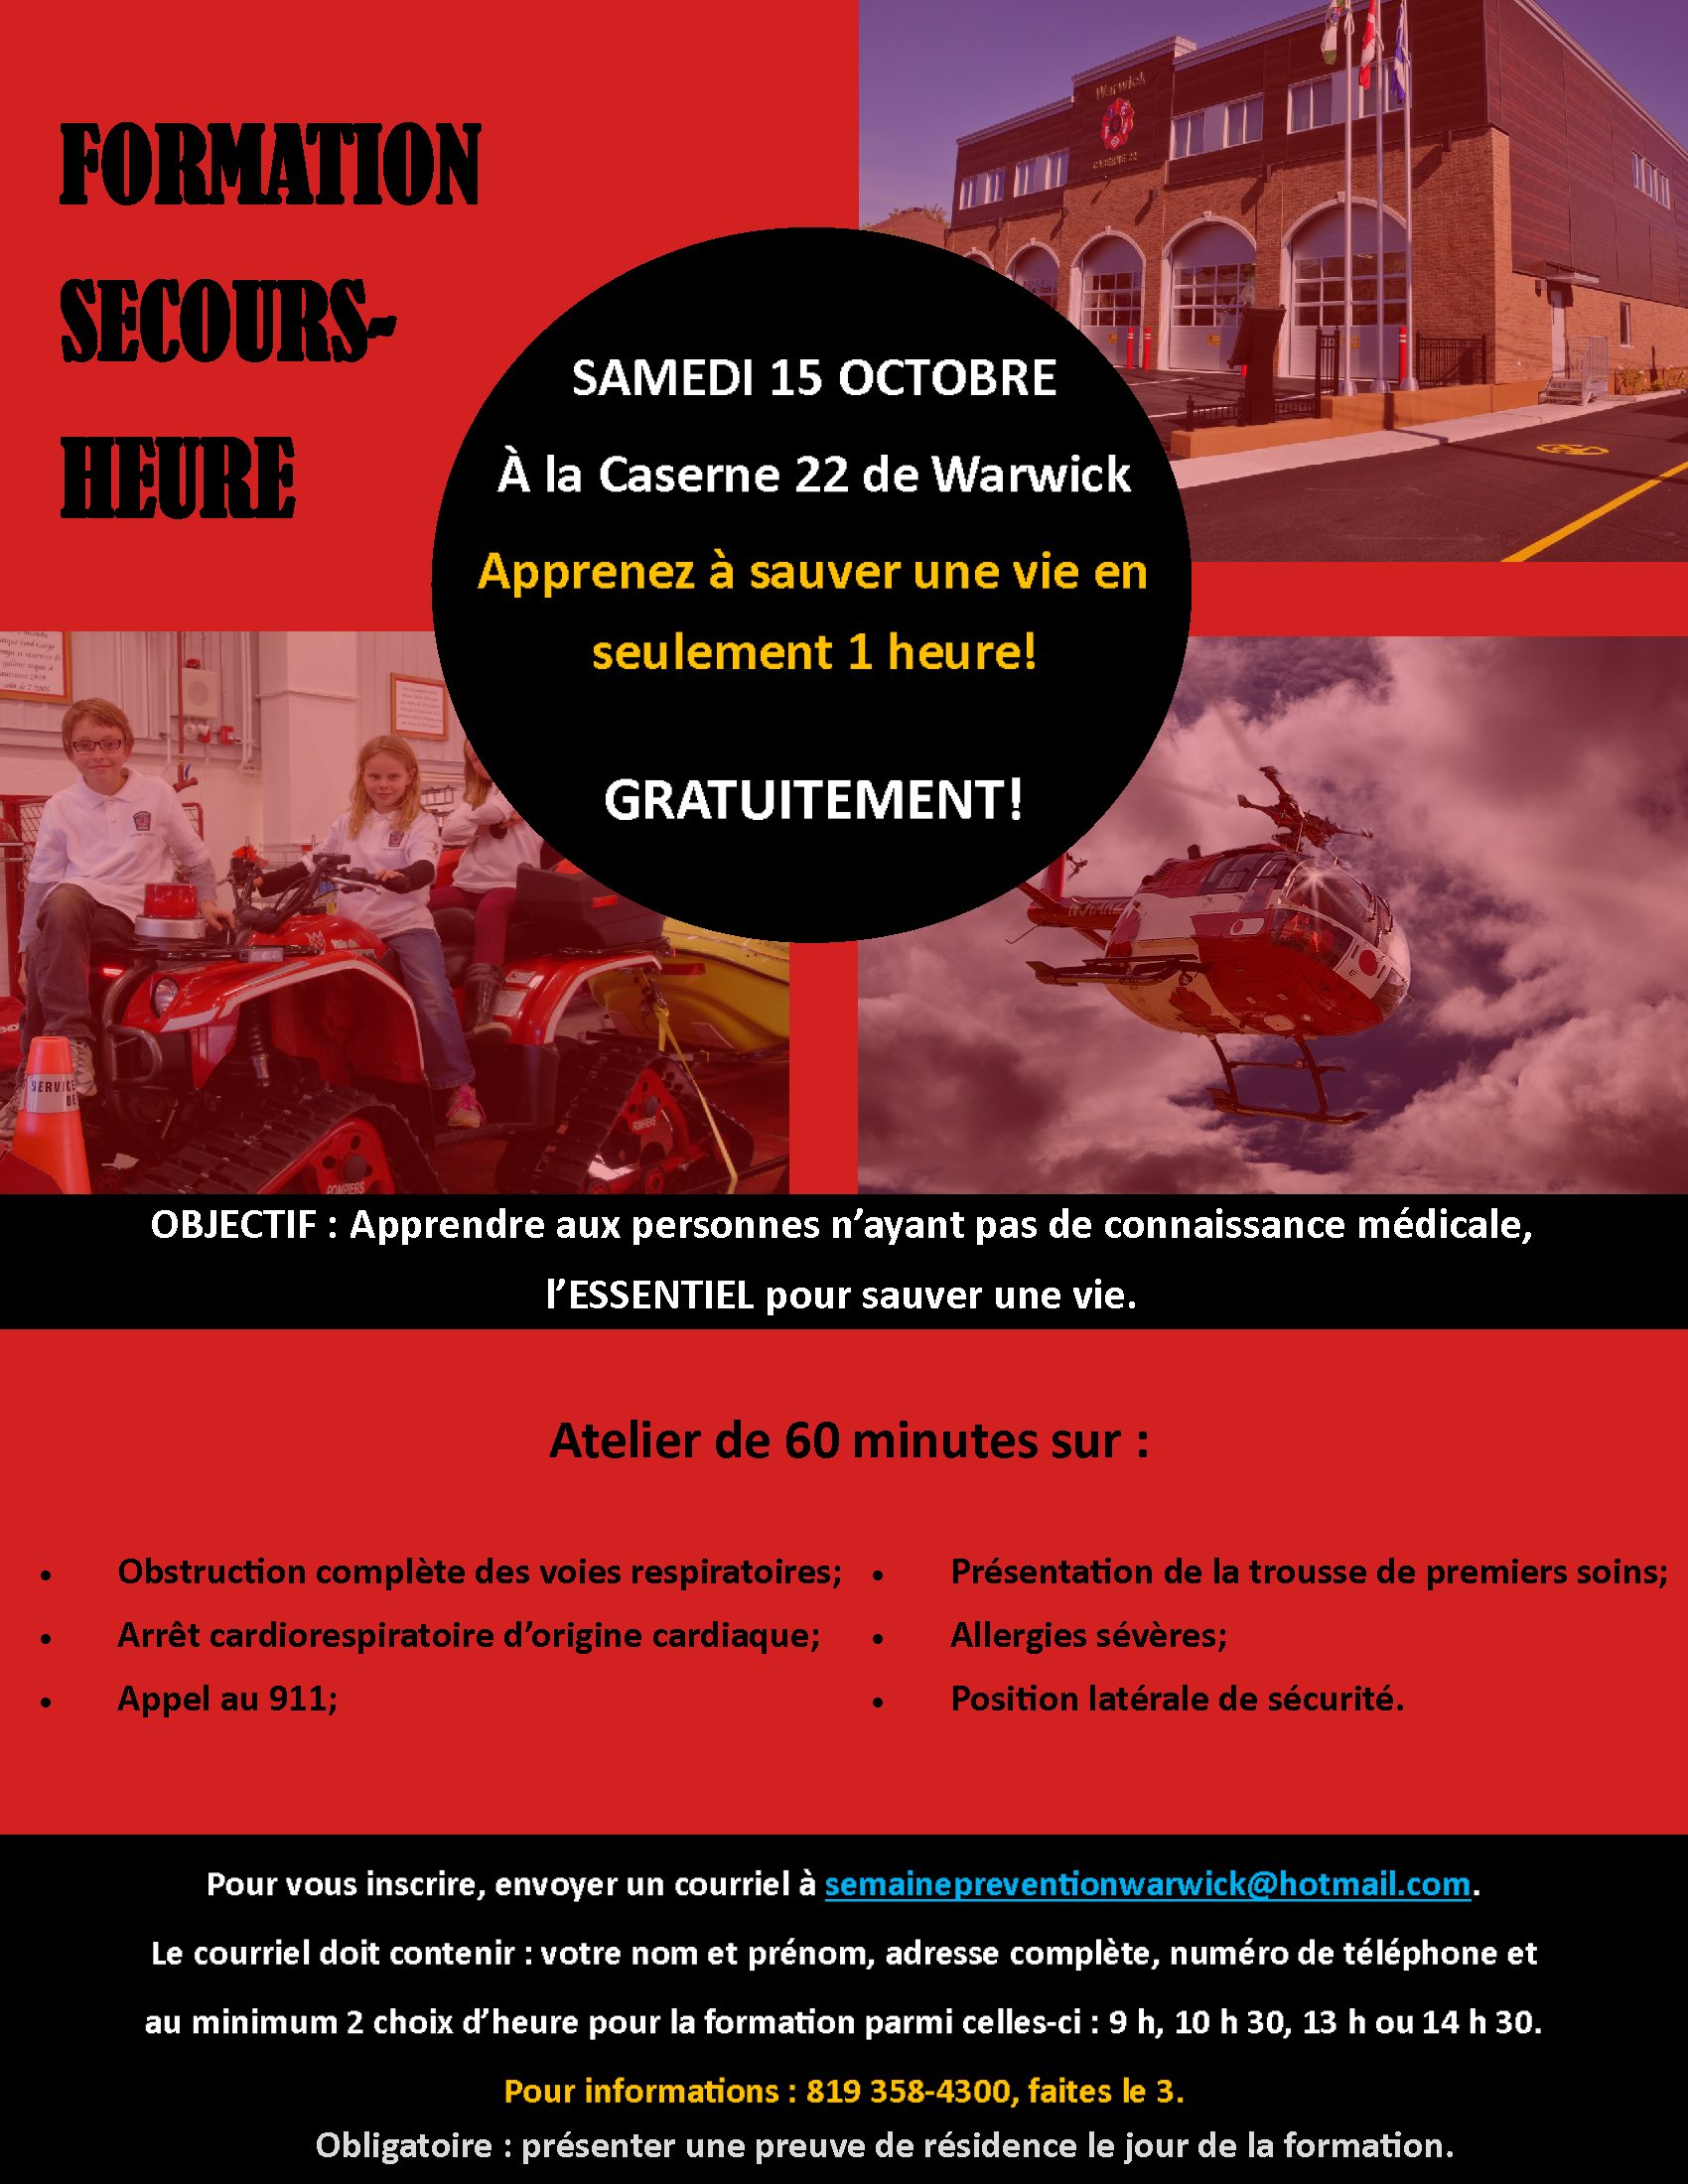 montage-secours-heure-vf